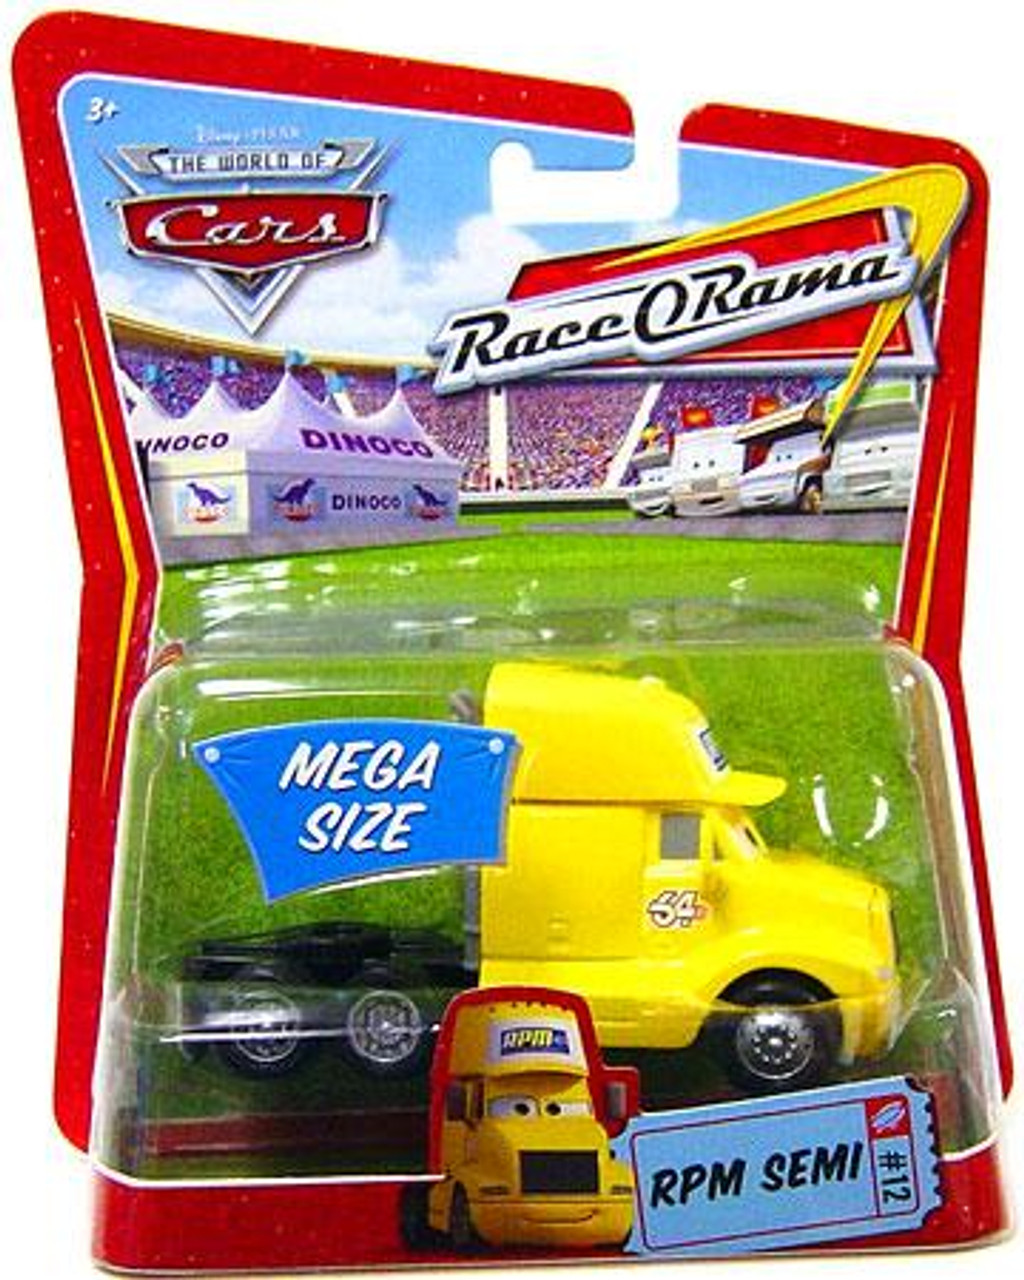 Disney Cars The World of Cars Race-O-Rama RPM Semi Diecast Car #12